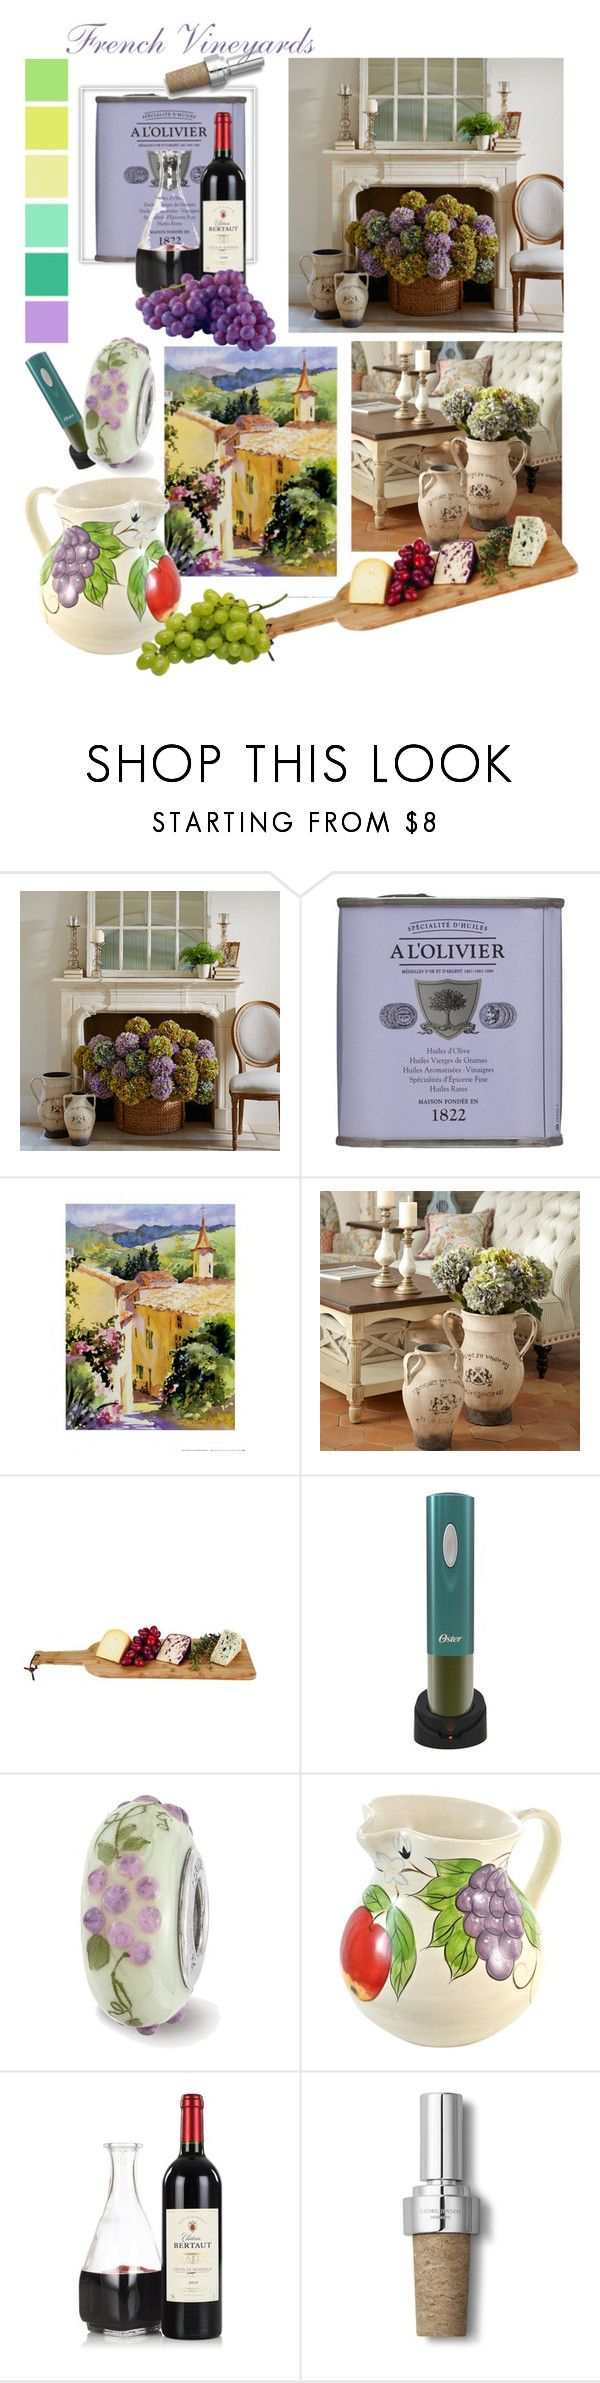 """""""French vineyards"""" by changethisonce ❤ liked on Polyvore featuring interior, interiors, interior design, home, home decor, interior decorating, Pier 1 Imports, A L'Olivier, Seed Design and Georg Jensen"""